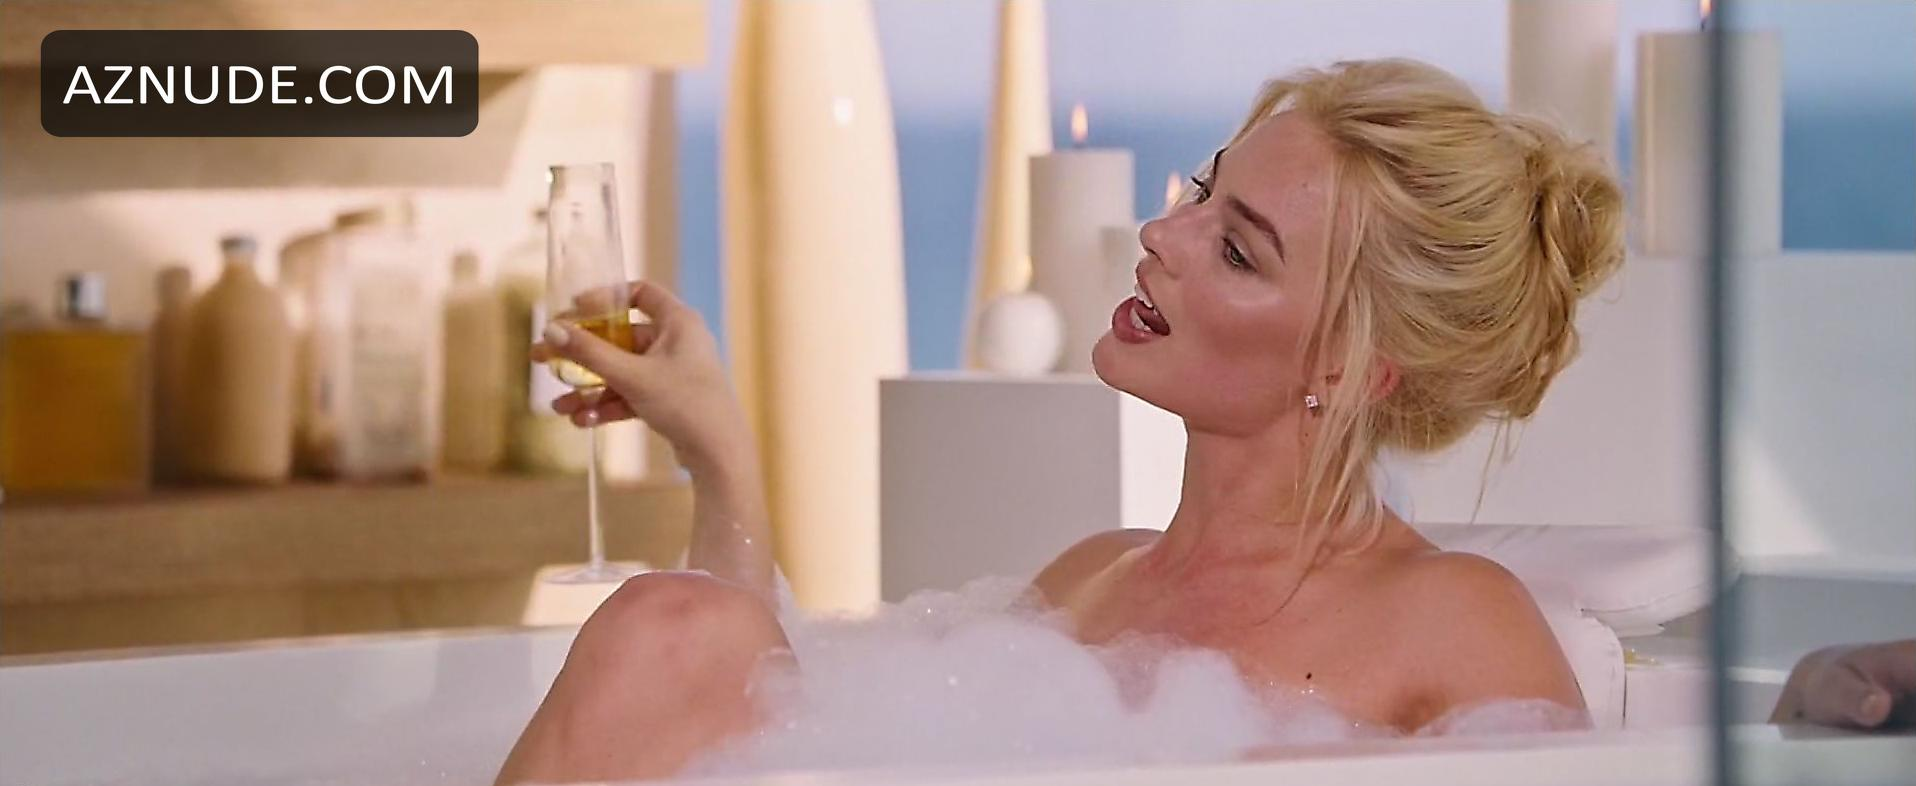 Something and Margot Robbie nude happens